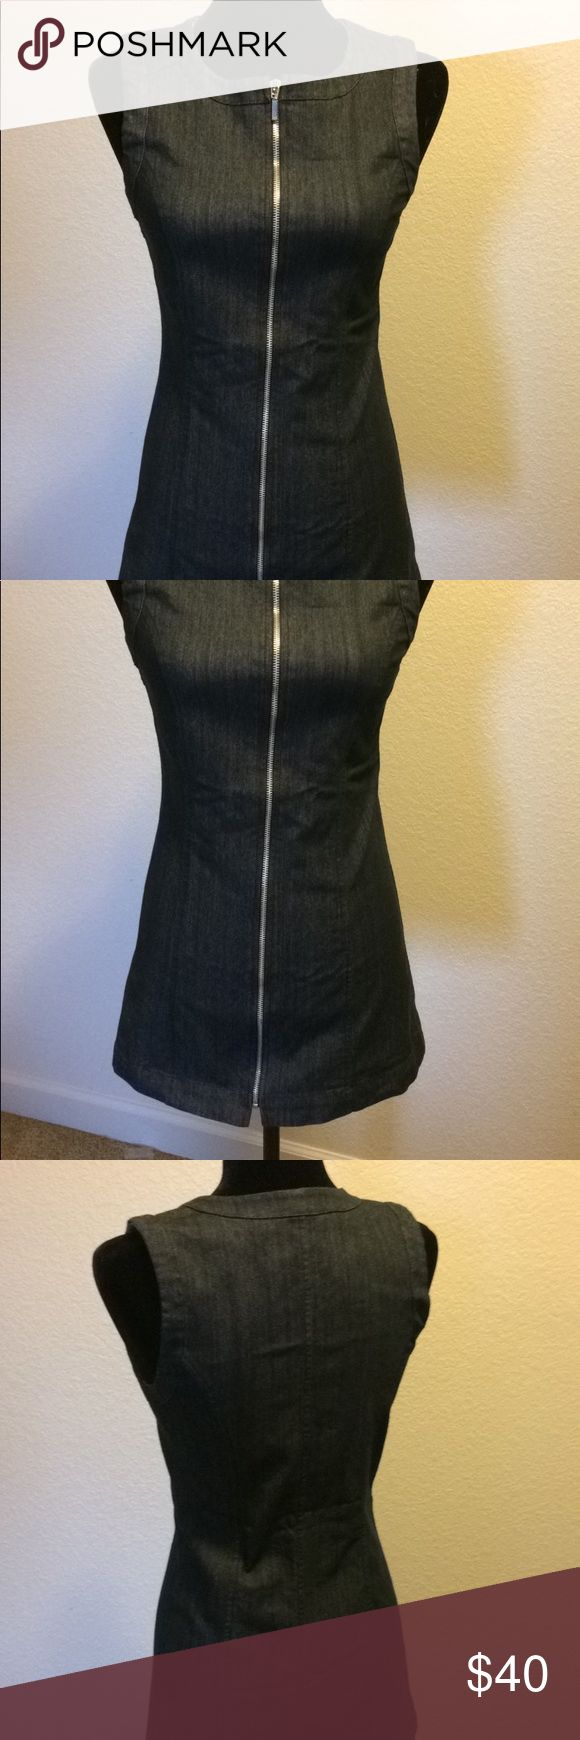 Naf Naf Jean Dress Dark Blue/Grey Denim Jean Dress with zipper down the front. Size European 38 which is a Size 7 in America. Has a little stretch, very form fitting and lays mid thigh. NAF NAF Dresses Midi